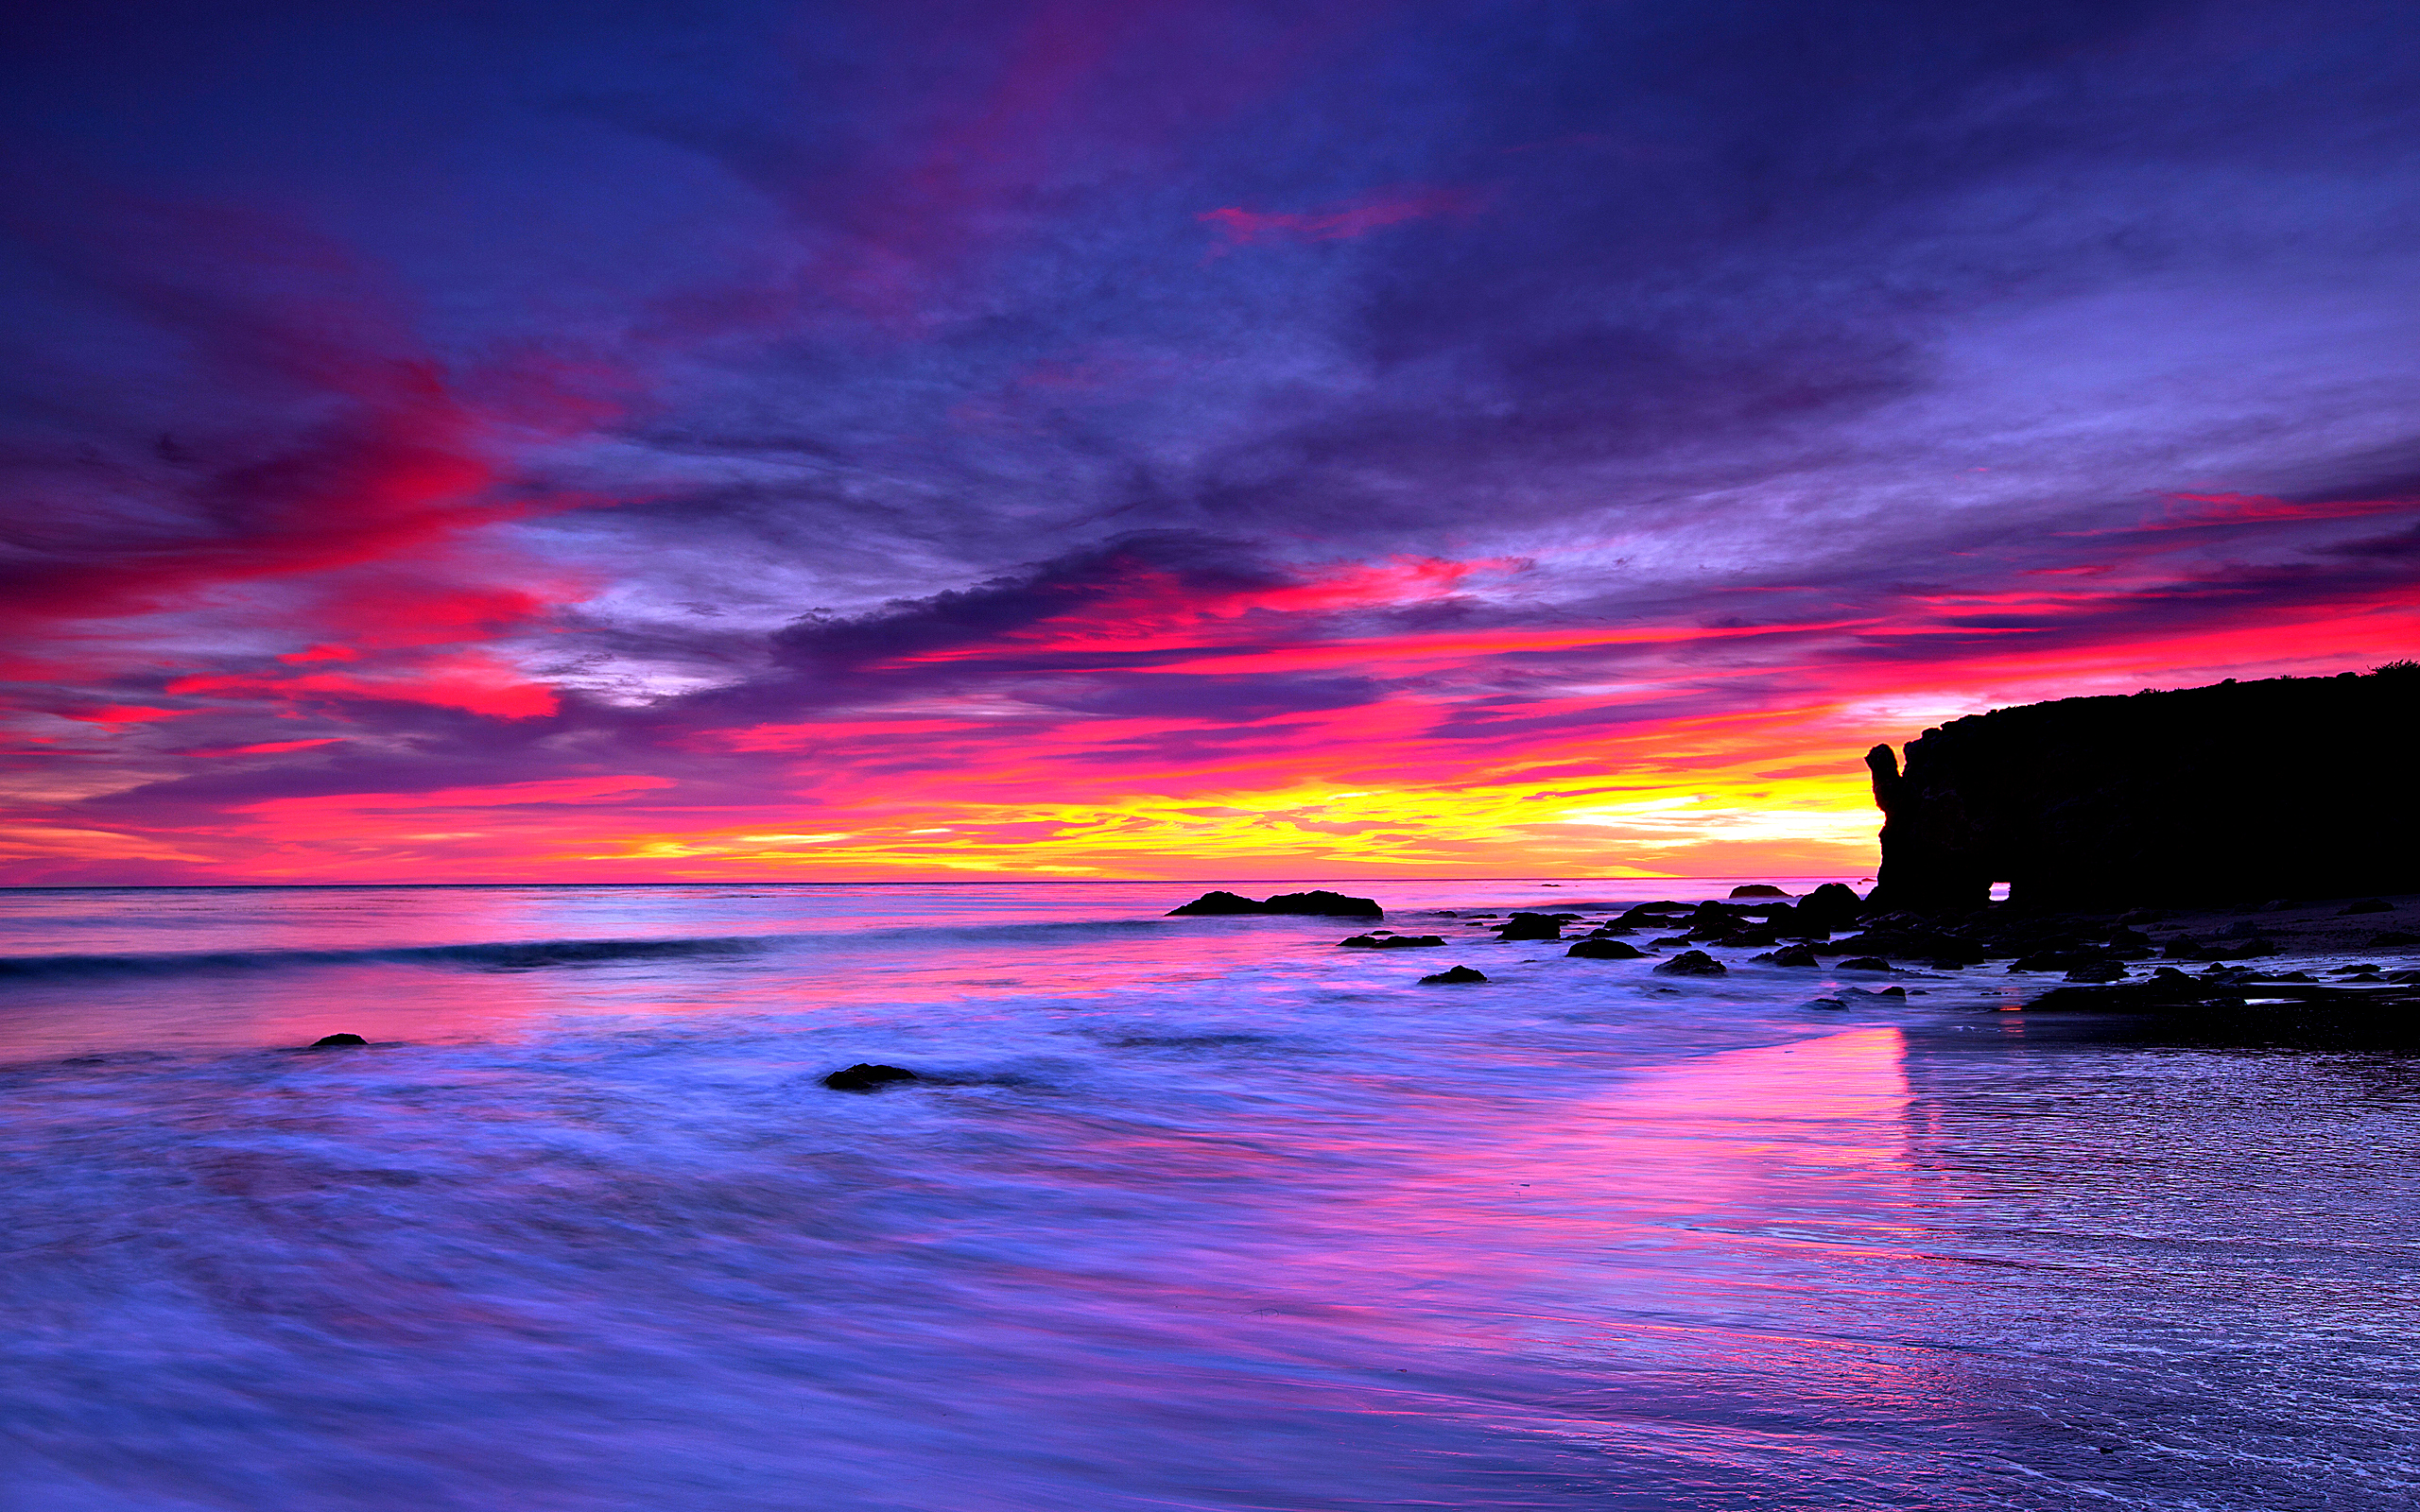 Hd Wallpapers Beautiful Wallpapers: Beautiful Ocean Pictures Wallpaper